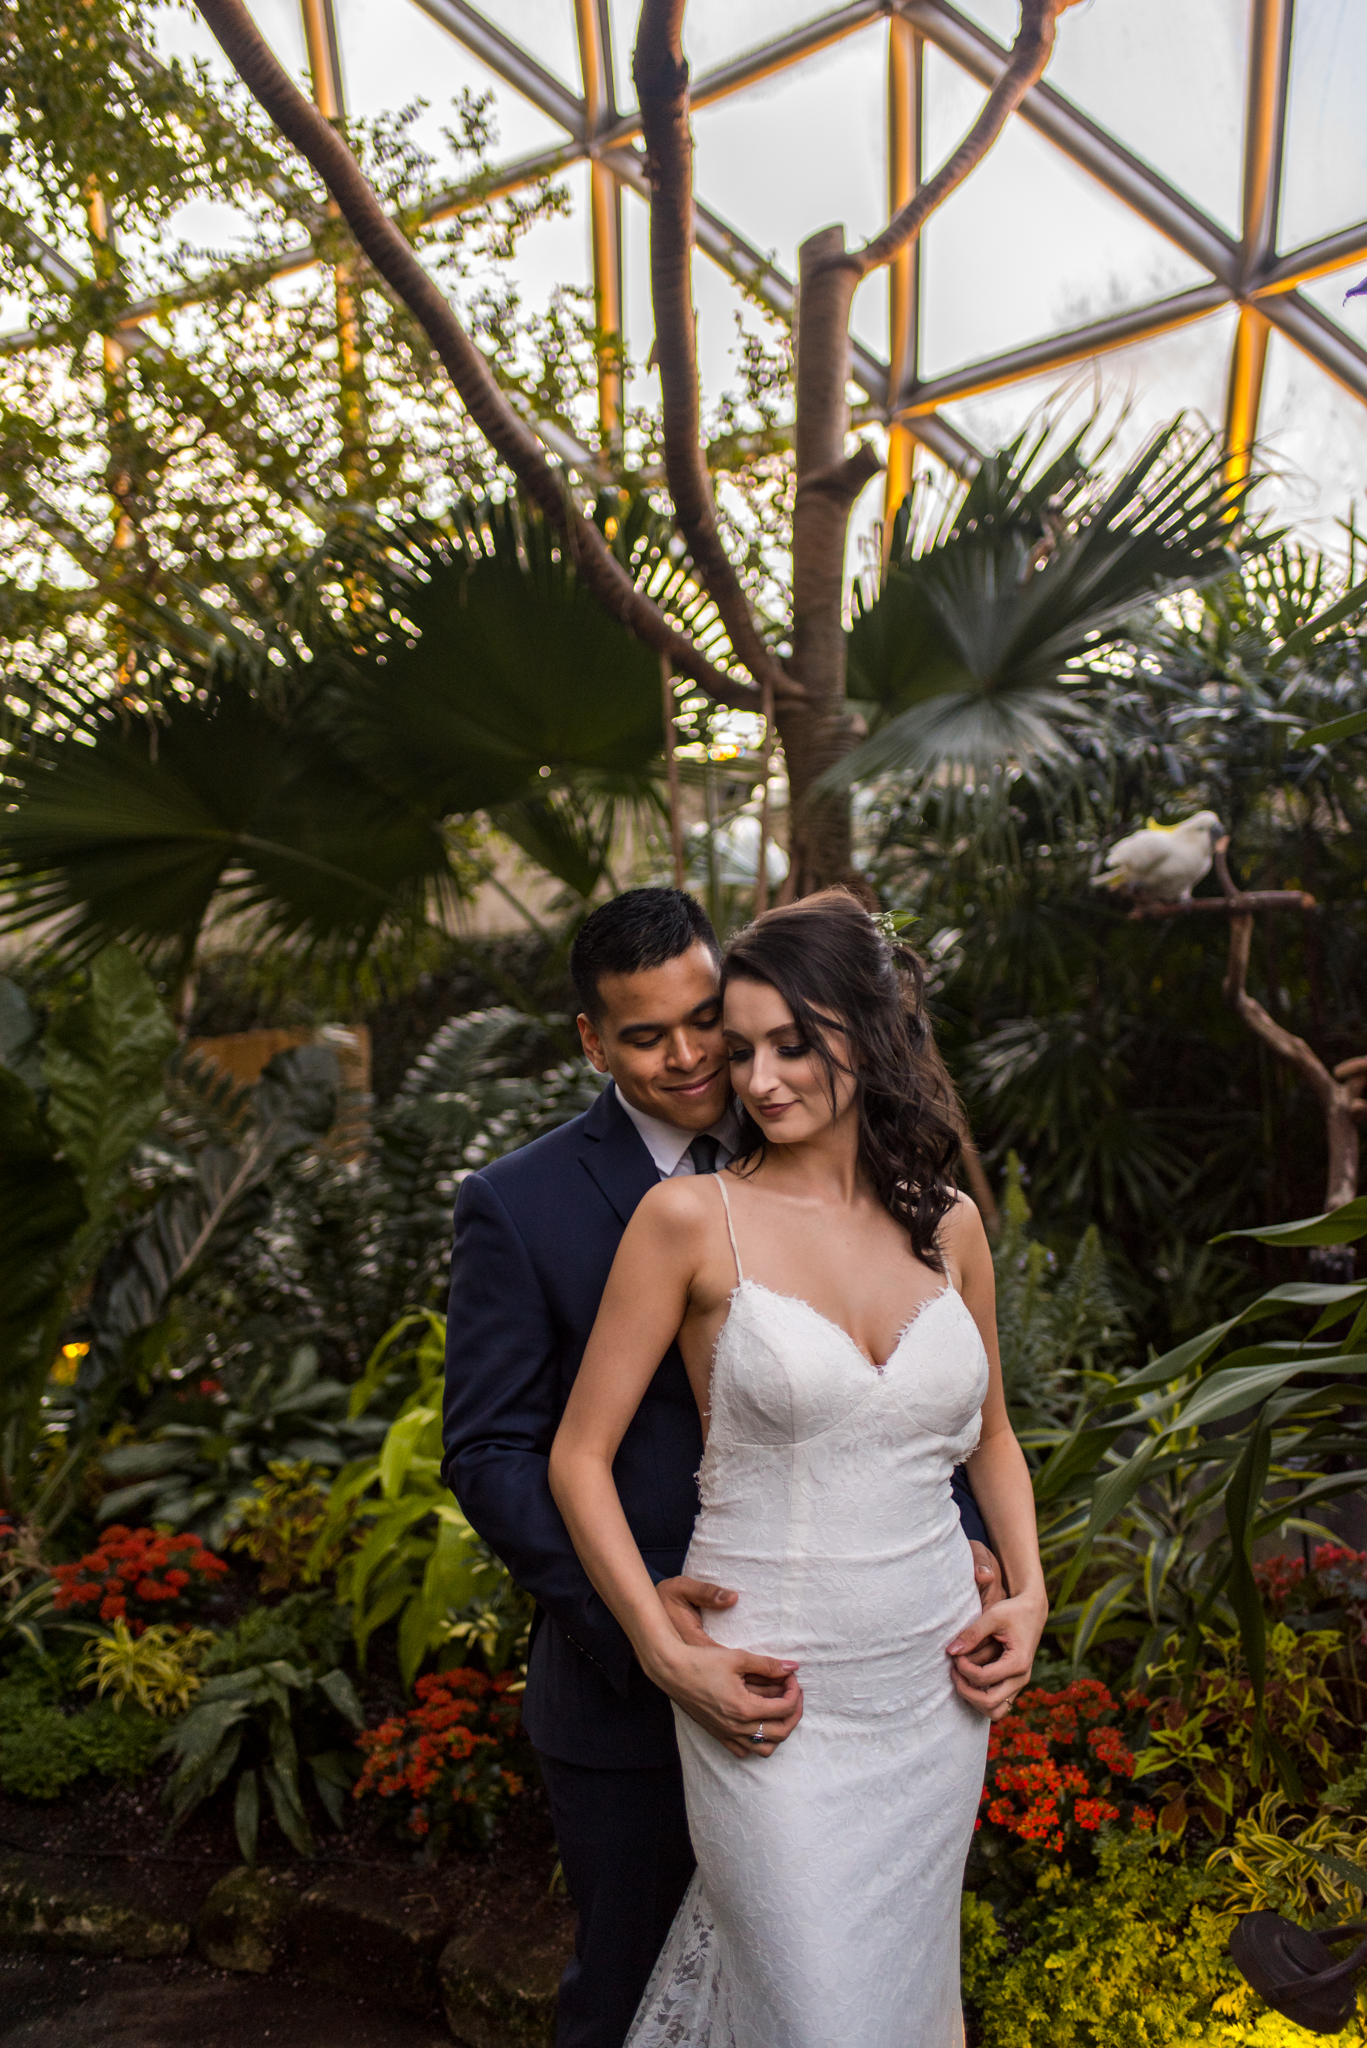 Queen Elizabeth Park Wedding Photographer-66.jpg